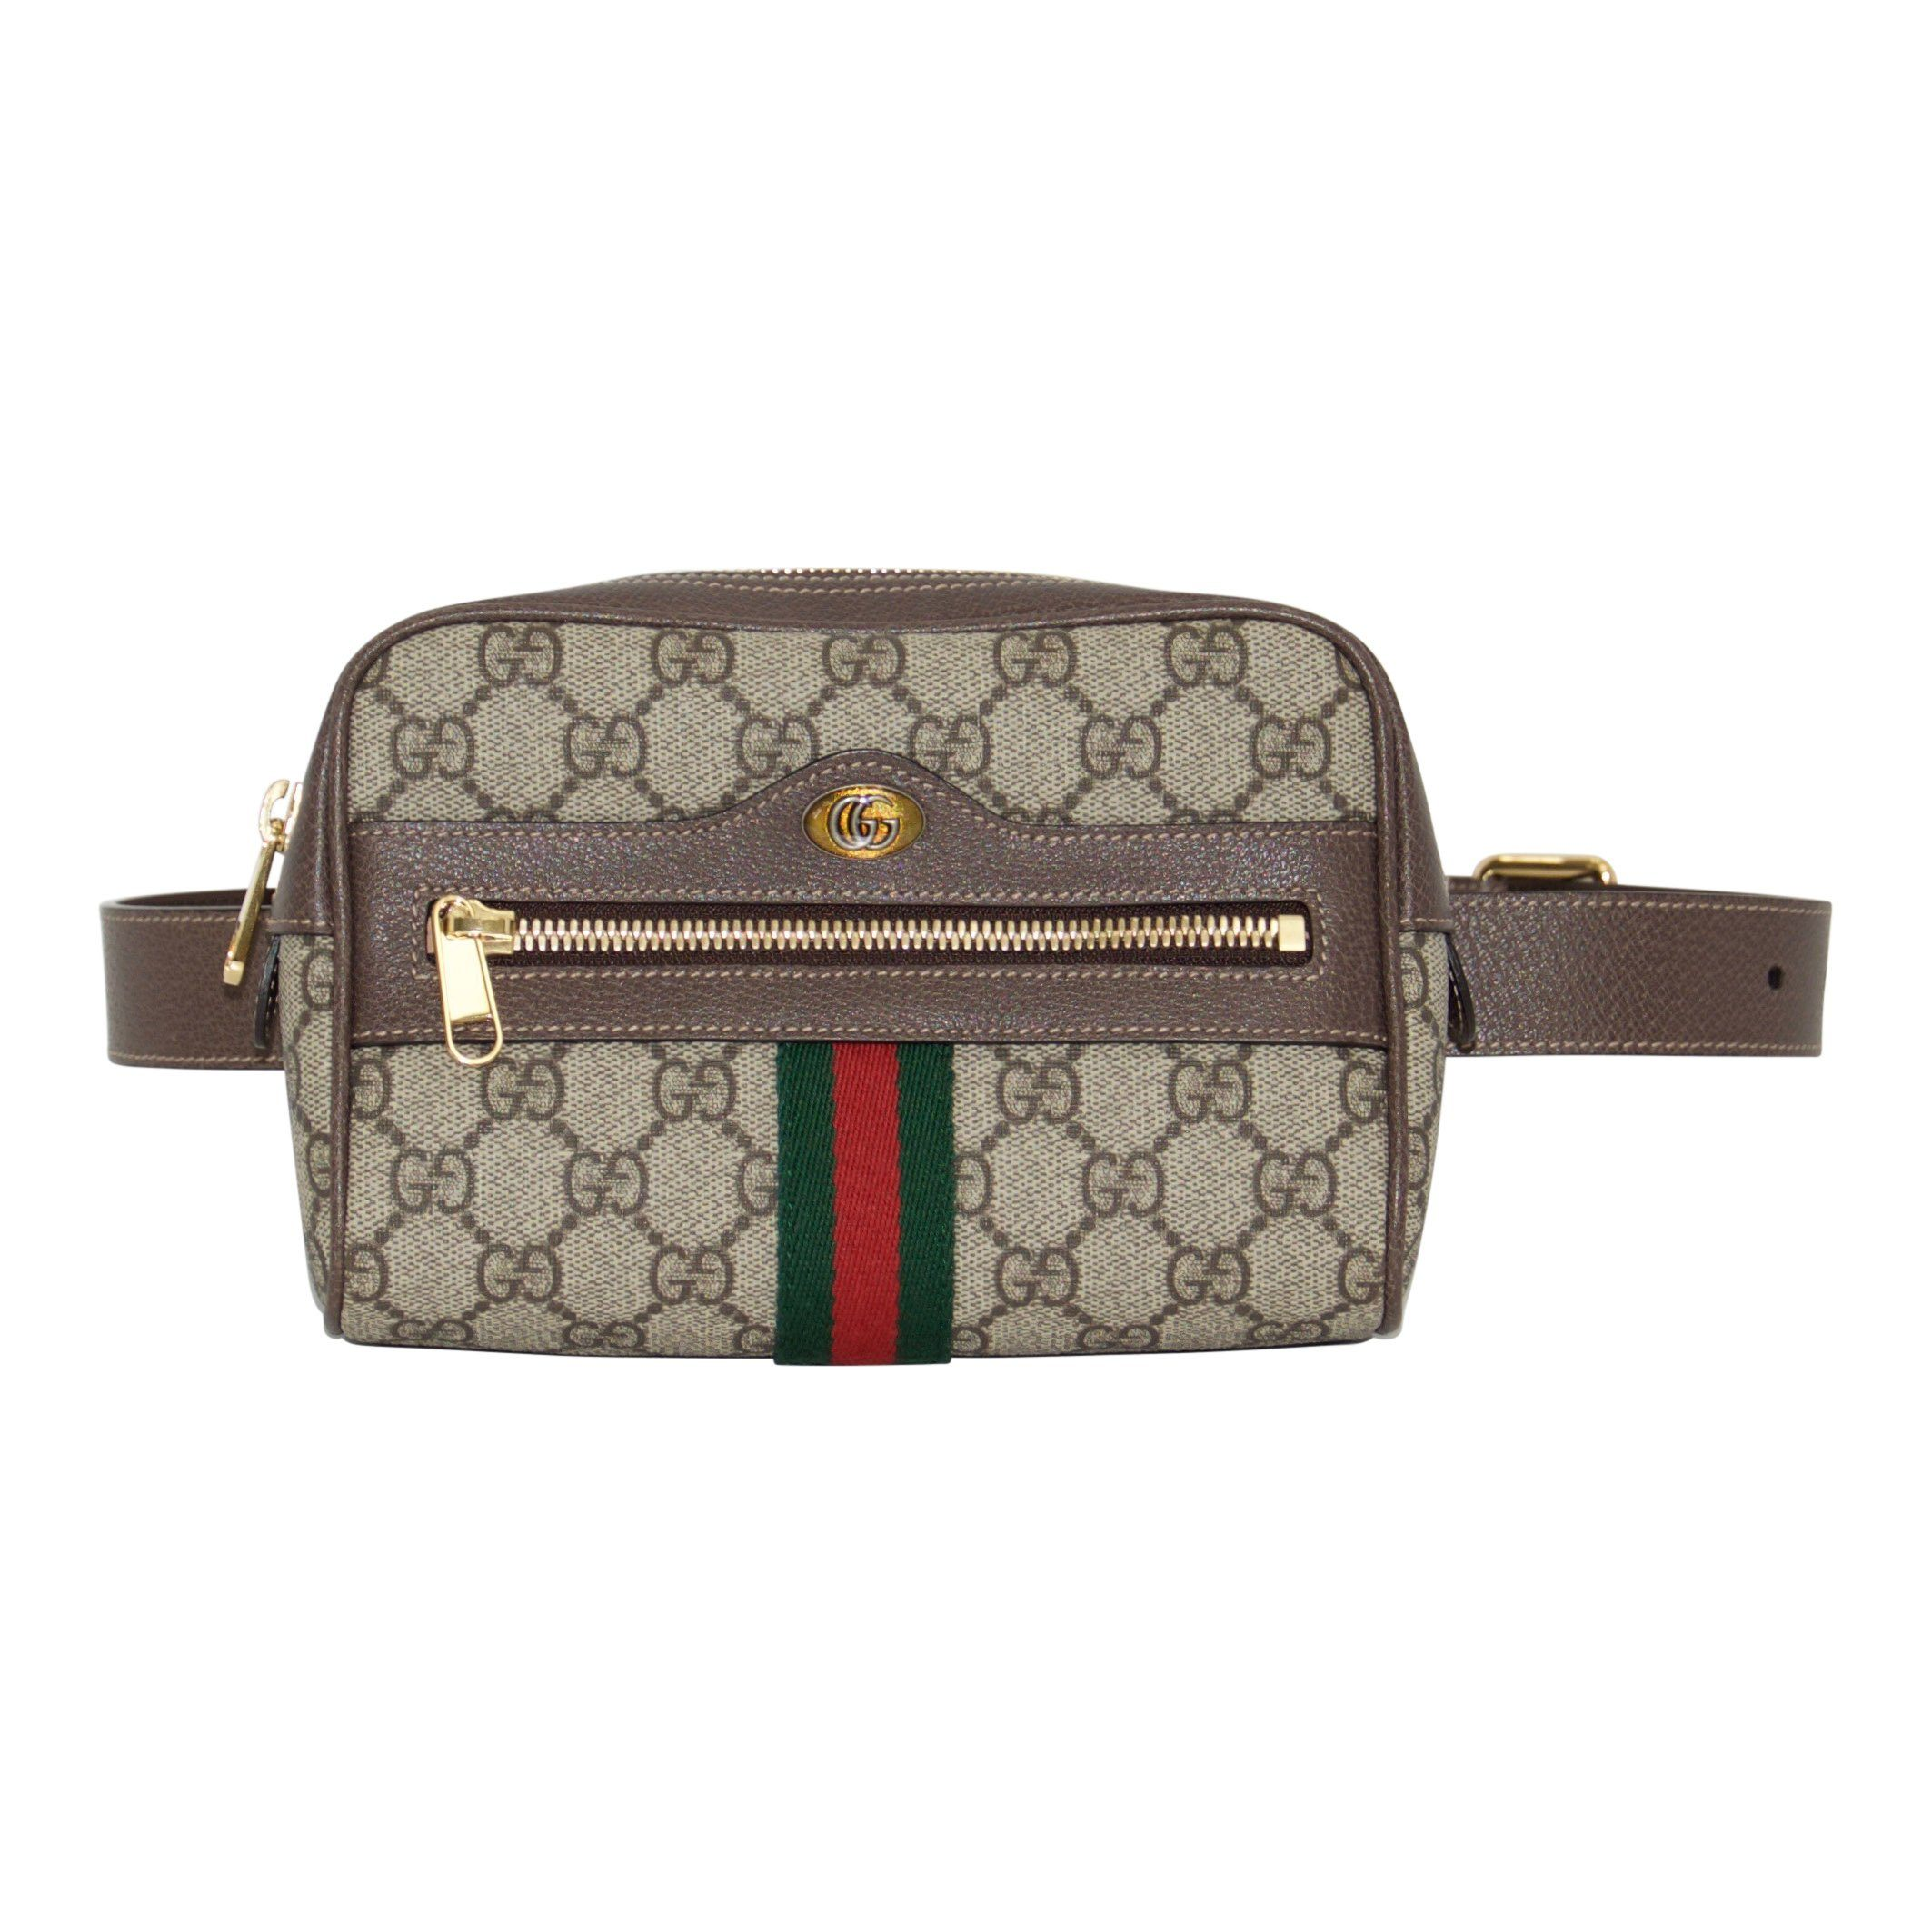 3de4be29145b2 Gucci Ophidia GG Supreme Small Belt Bag– Oliver Jewellery